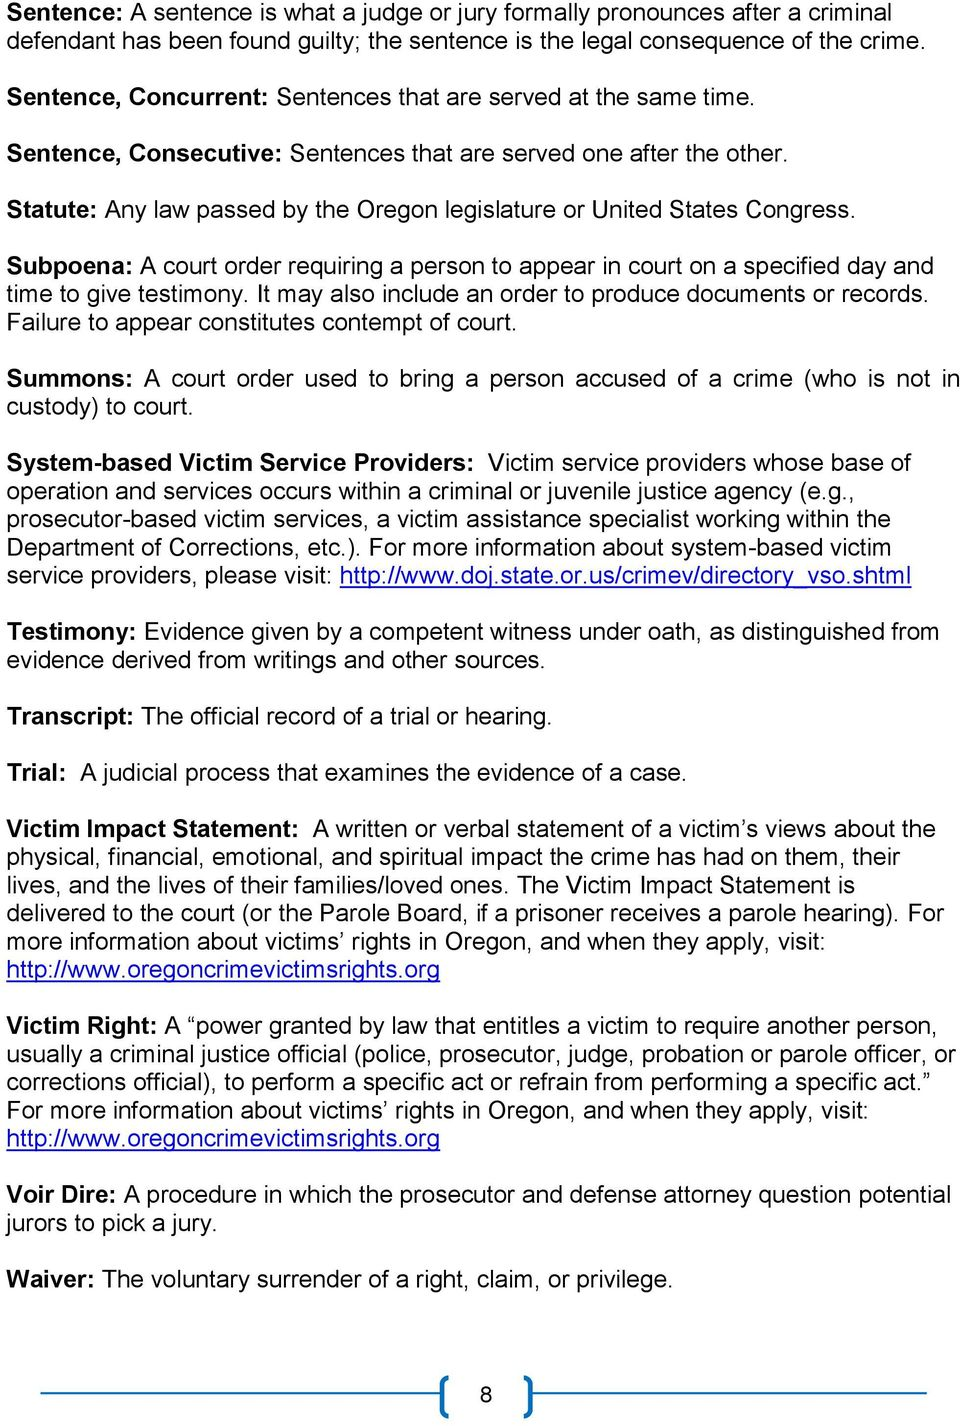 Statute: Any law passed by the Oregon legislature or United States Congress. Subpoena: A court order requiring a person to appear in court on a specified day and time to give testimony.